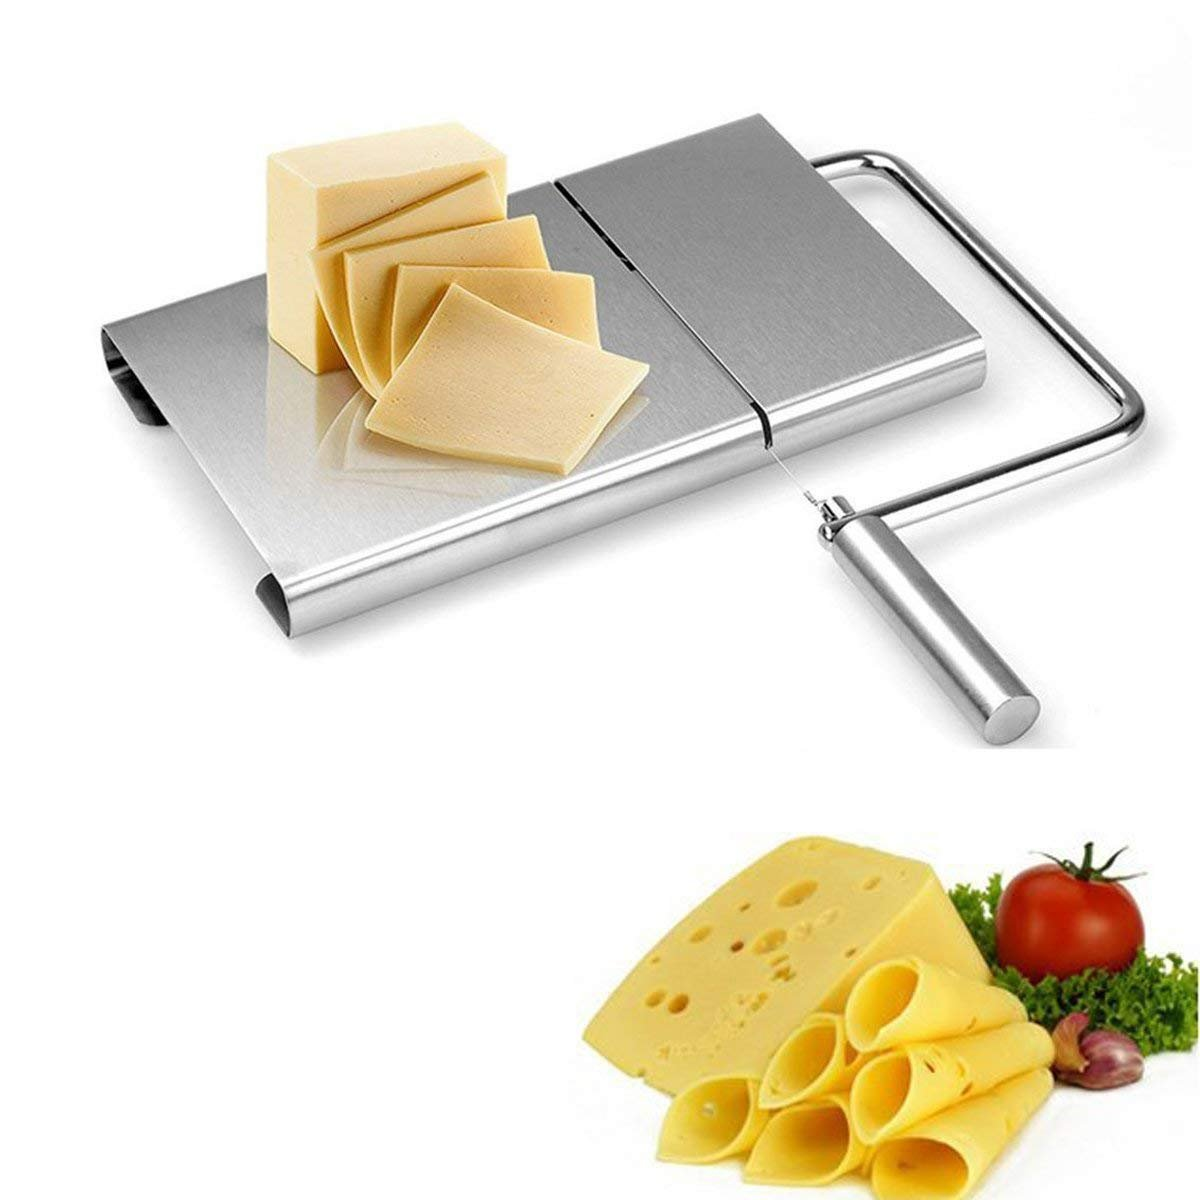 Cheese Slicer Cheese Cutter with Durable Wire Cutting Board for Kitchen Cooking Serving Baking Tools, Making Dessert, 5 Wires Included